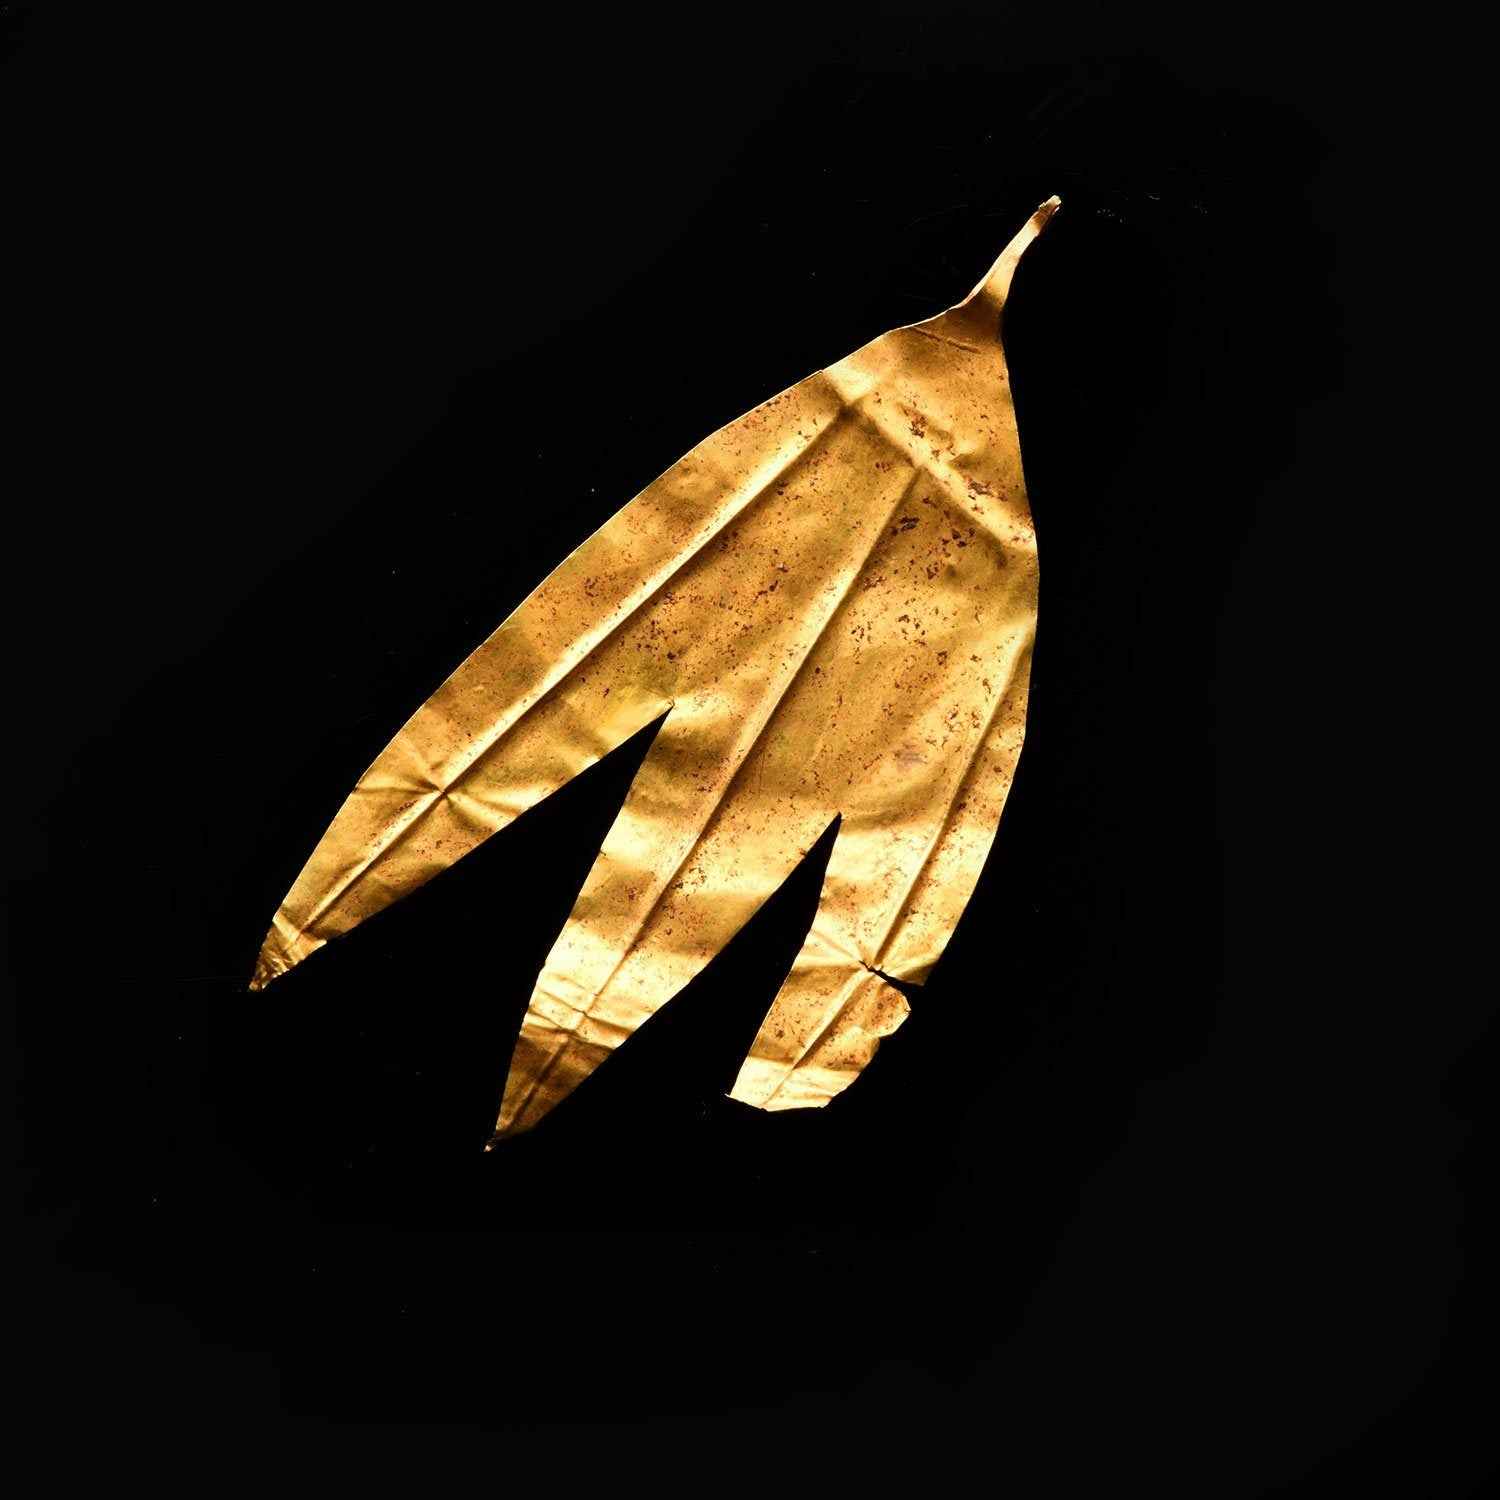 * A Greek gold Leaf from an Olive Wreath, ca. 2nd century BCE